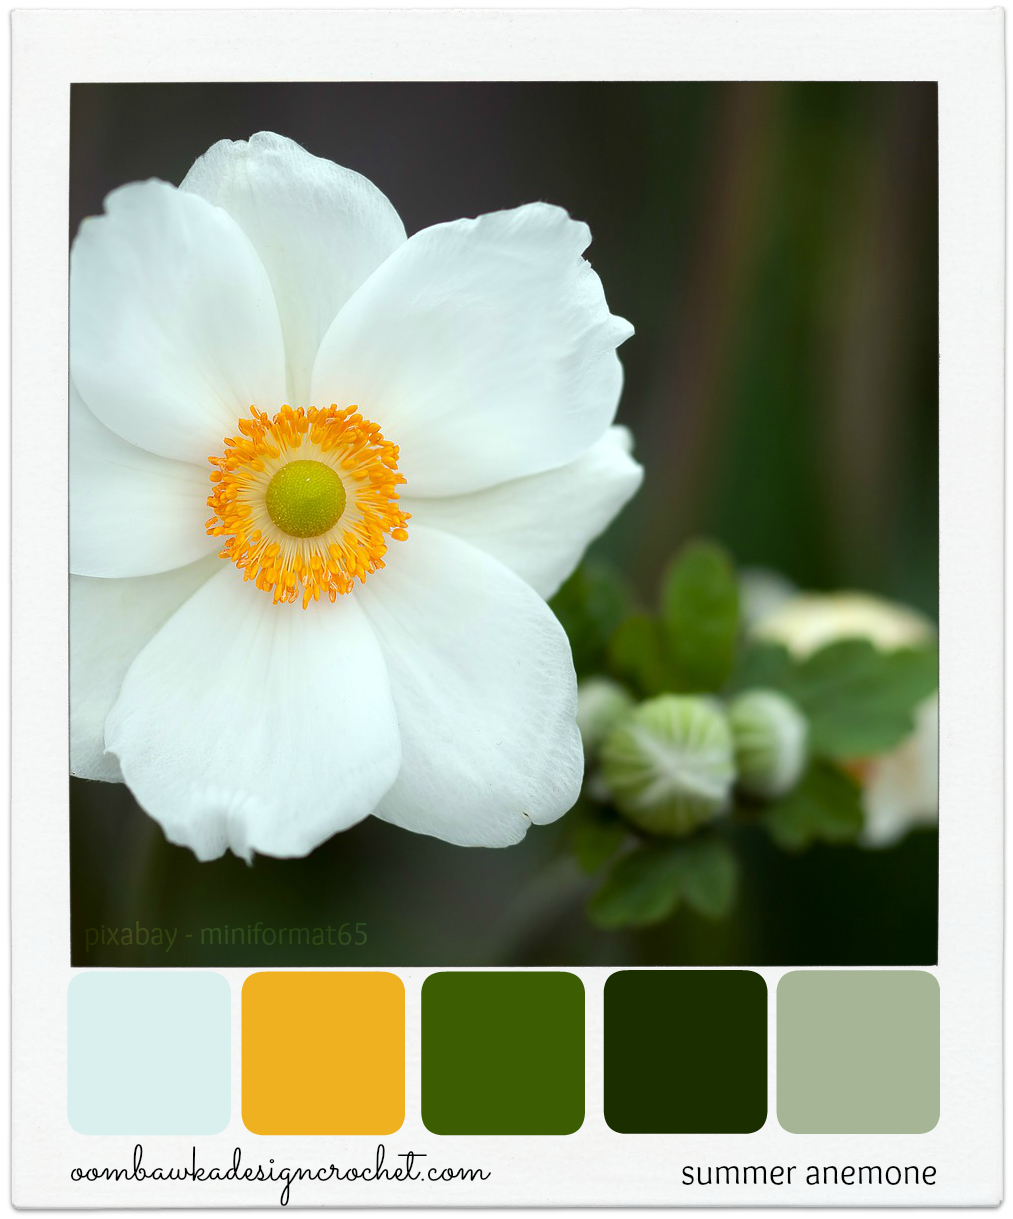 Summer anemone colour palette summer color inspiration and color white anemone flower summer outdoors nature flowers white beauty macro close up mightylinksfo Image collections